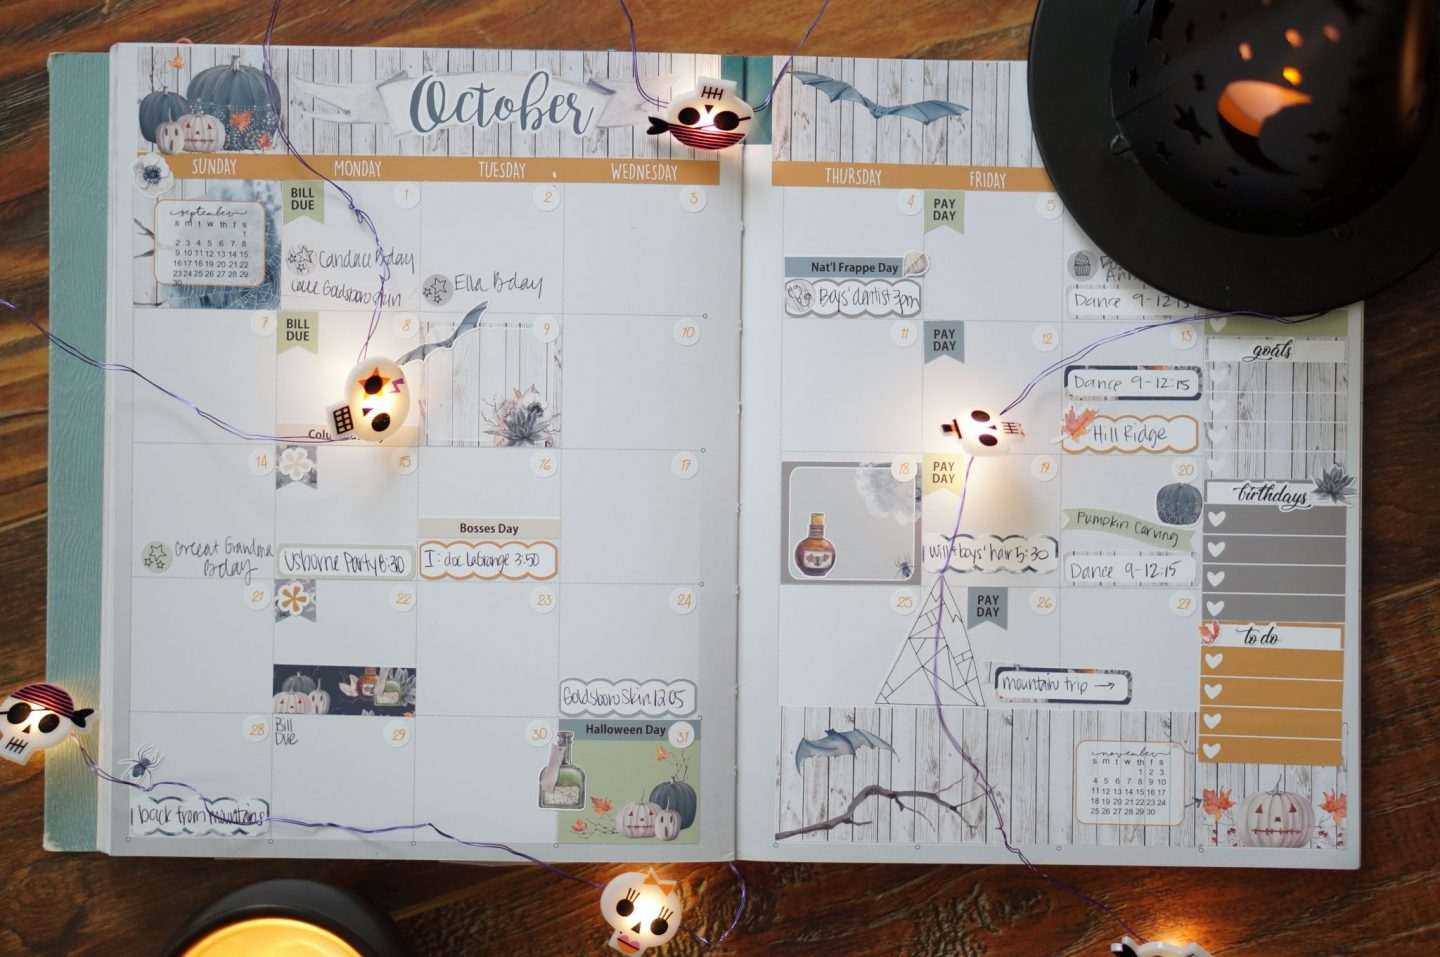 Popular North Carolina style blogger Rebecca Lately shares her monthly spread for October 2018 in her Inkwell Press Coil Free planner.